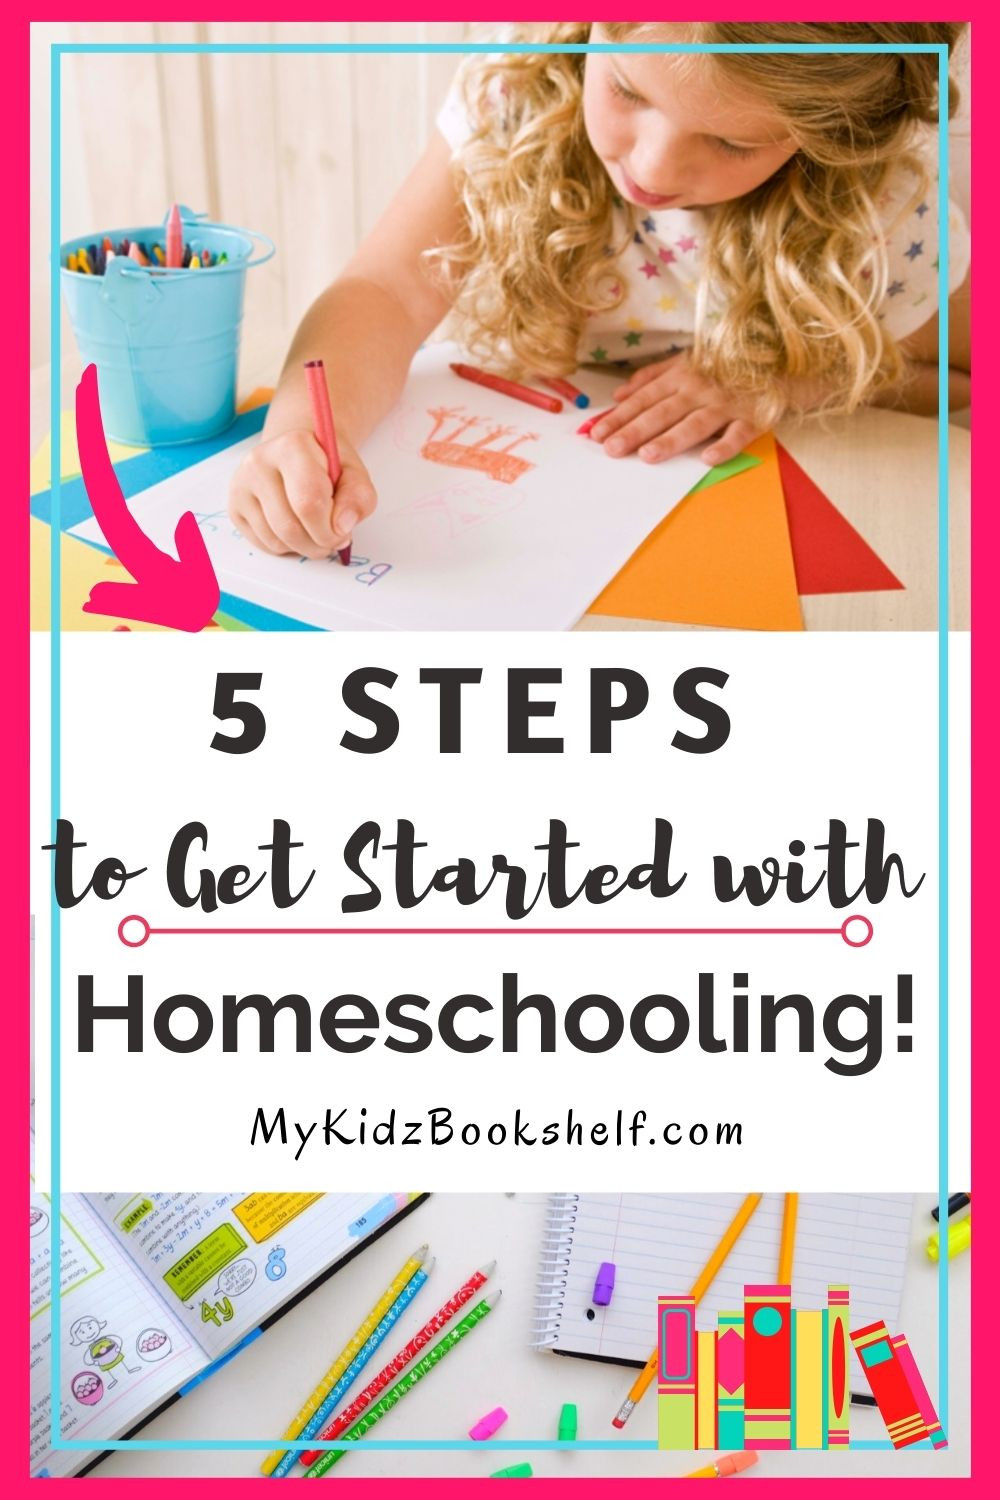 5 Steps to Get Started with Homeschooling girl drawing on paper